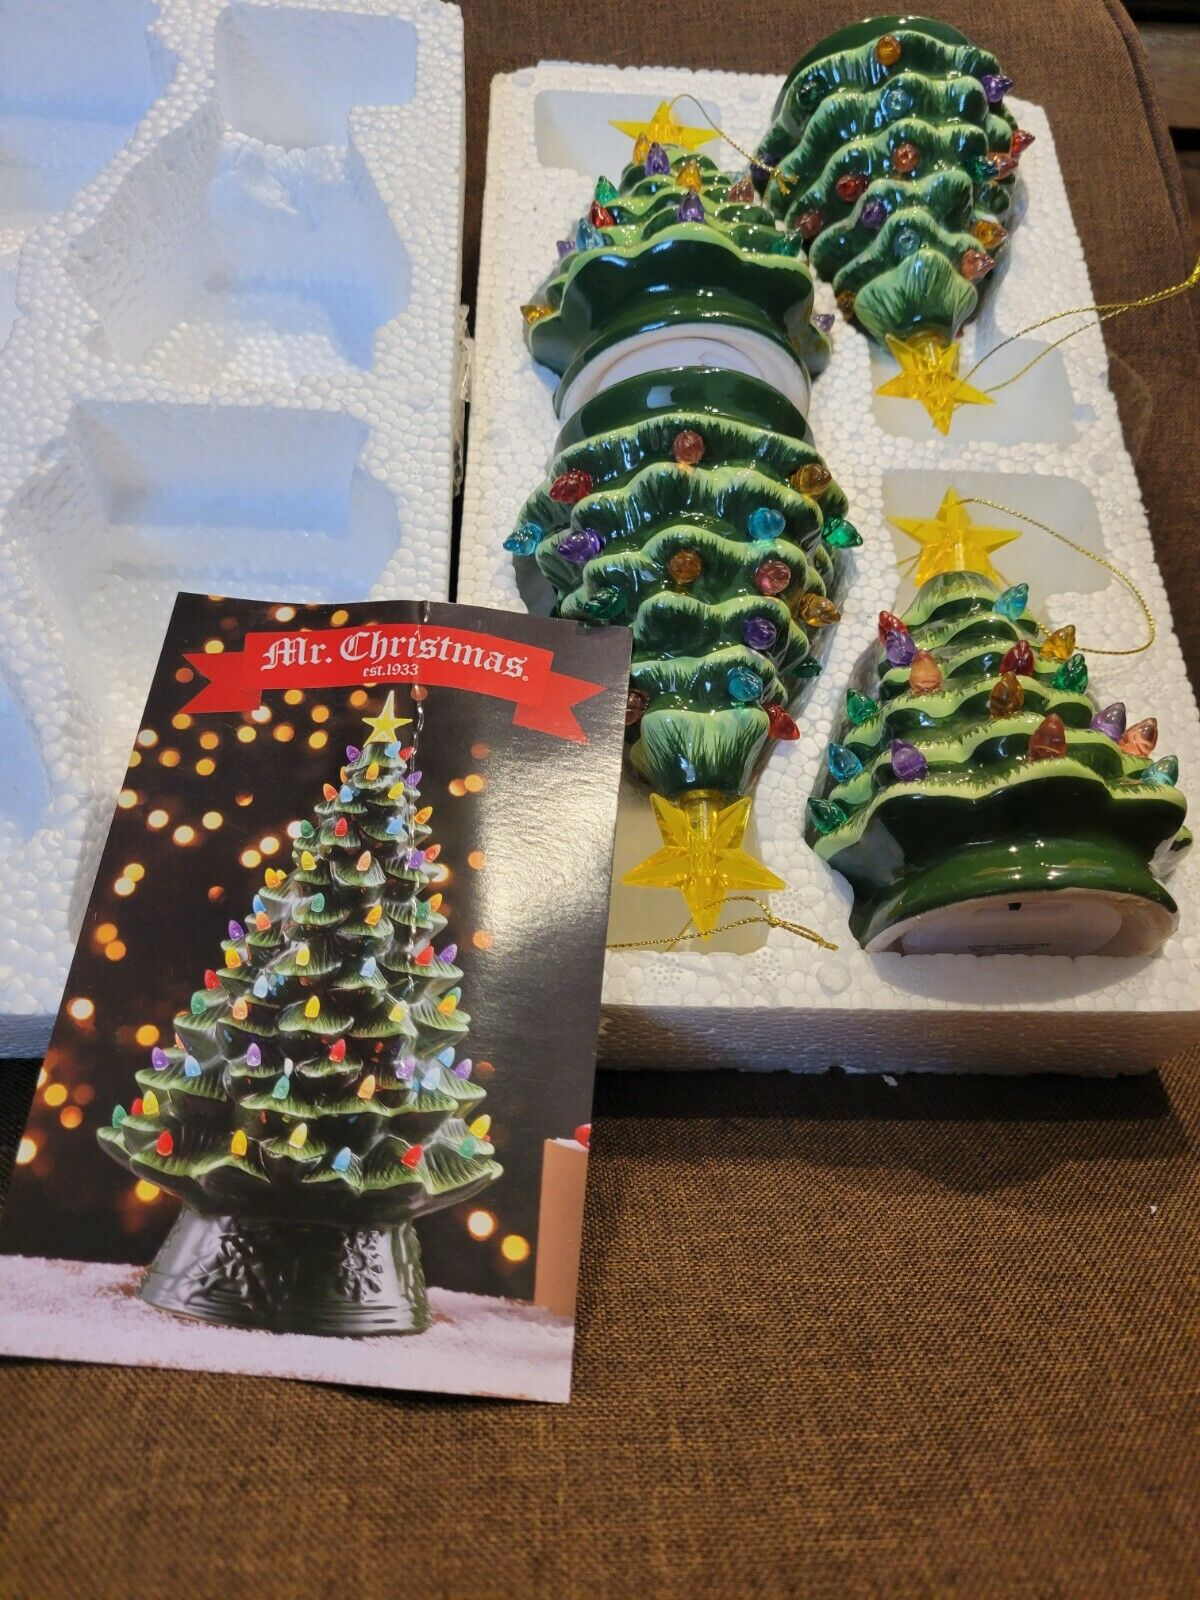 NOT Working HMK Ceramic Light Up Musical Christmas Tree Battery Operated